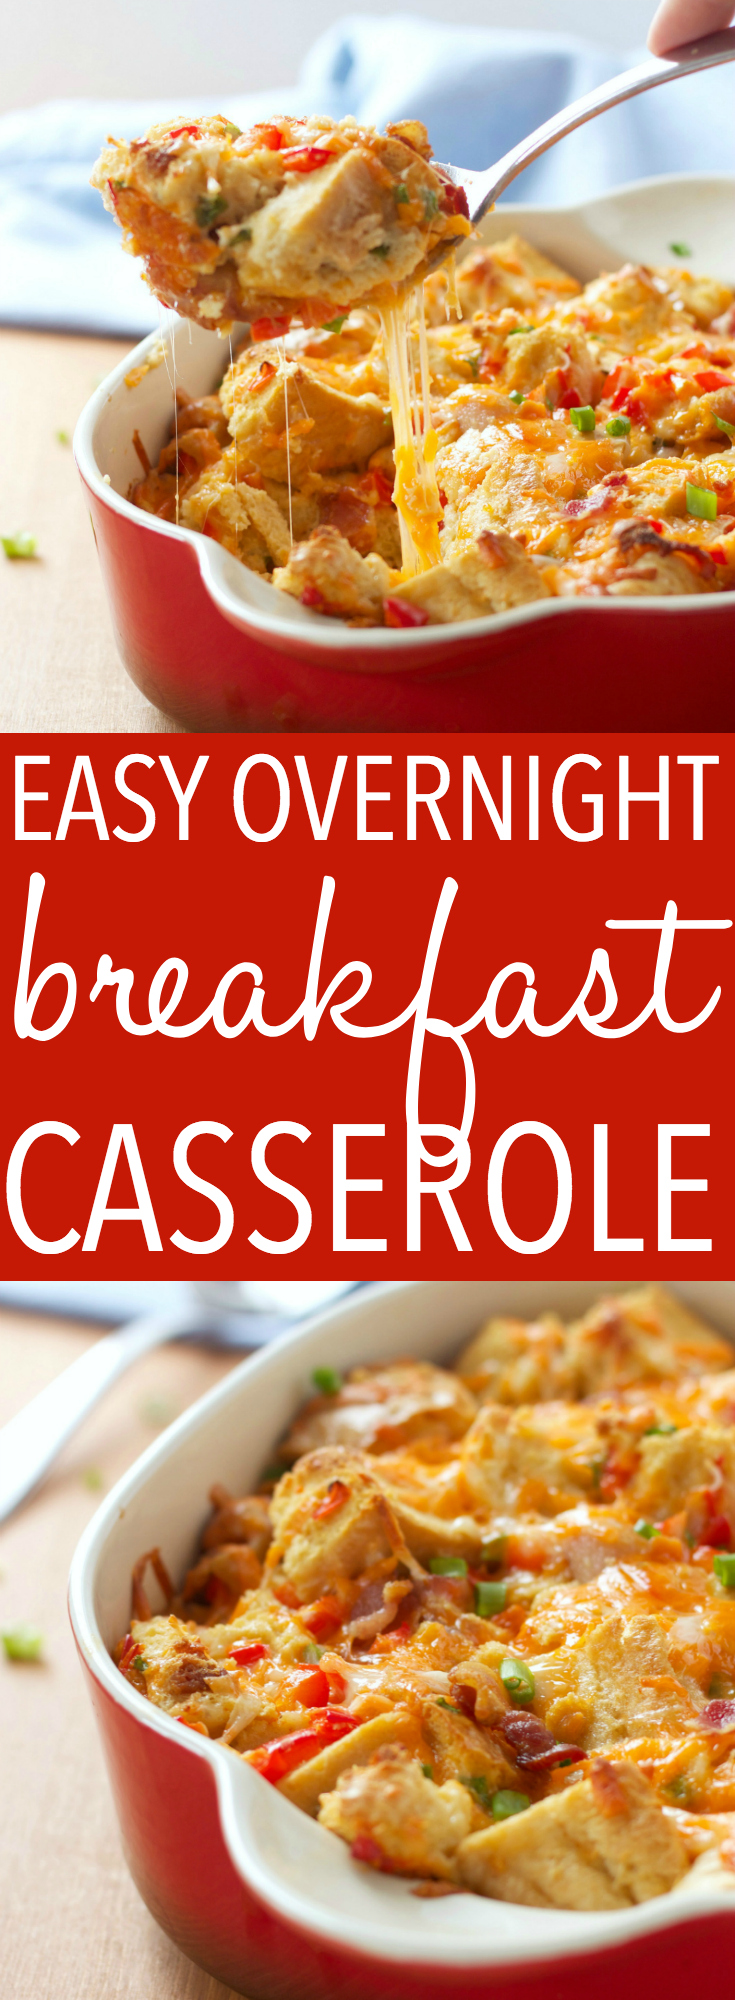 This Easy Make-Ahead Breakfast Casserole is a delicious, lighter twist on an old family favourite, A make-ahead breakfast casserole with bacon, eggs, and cheese! Recipe from thebusybaker.ca! #breakfast #casserole #easy #recipe #morning #christmas #thanksgiving #holiday #cheesy #healthy #overnight #makeahead via @busybakerblog